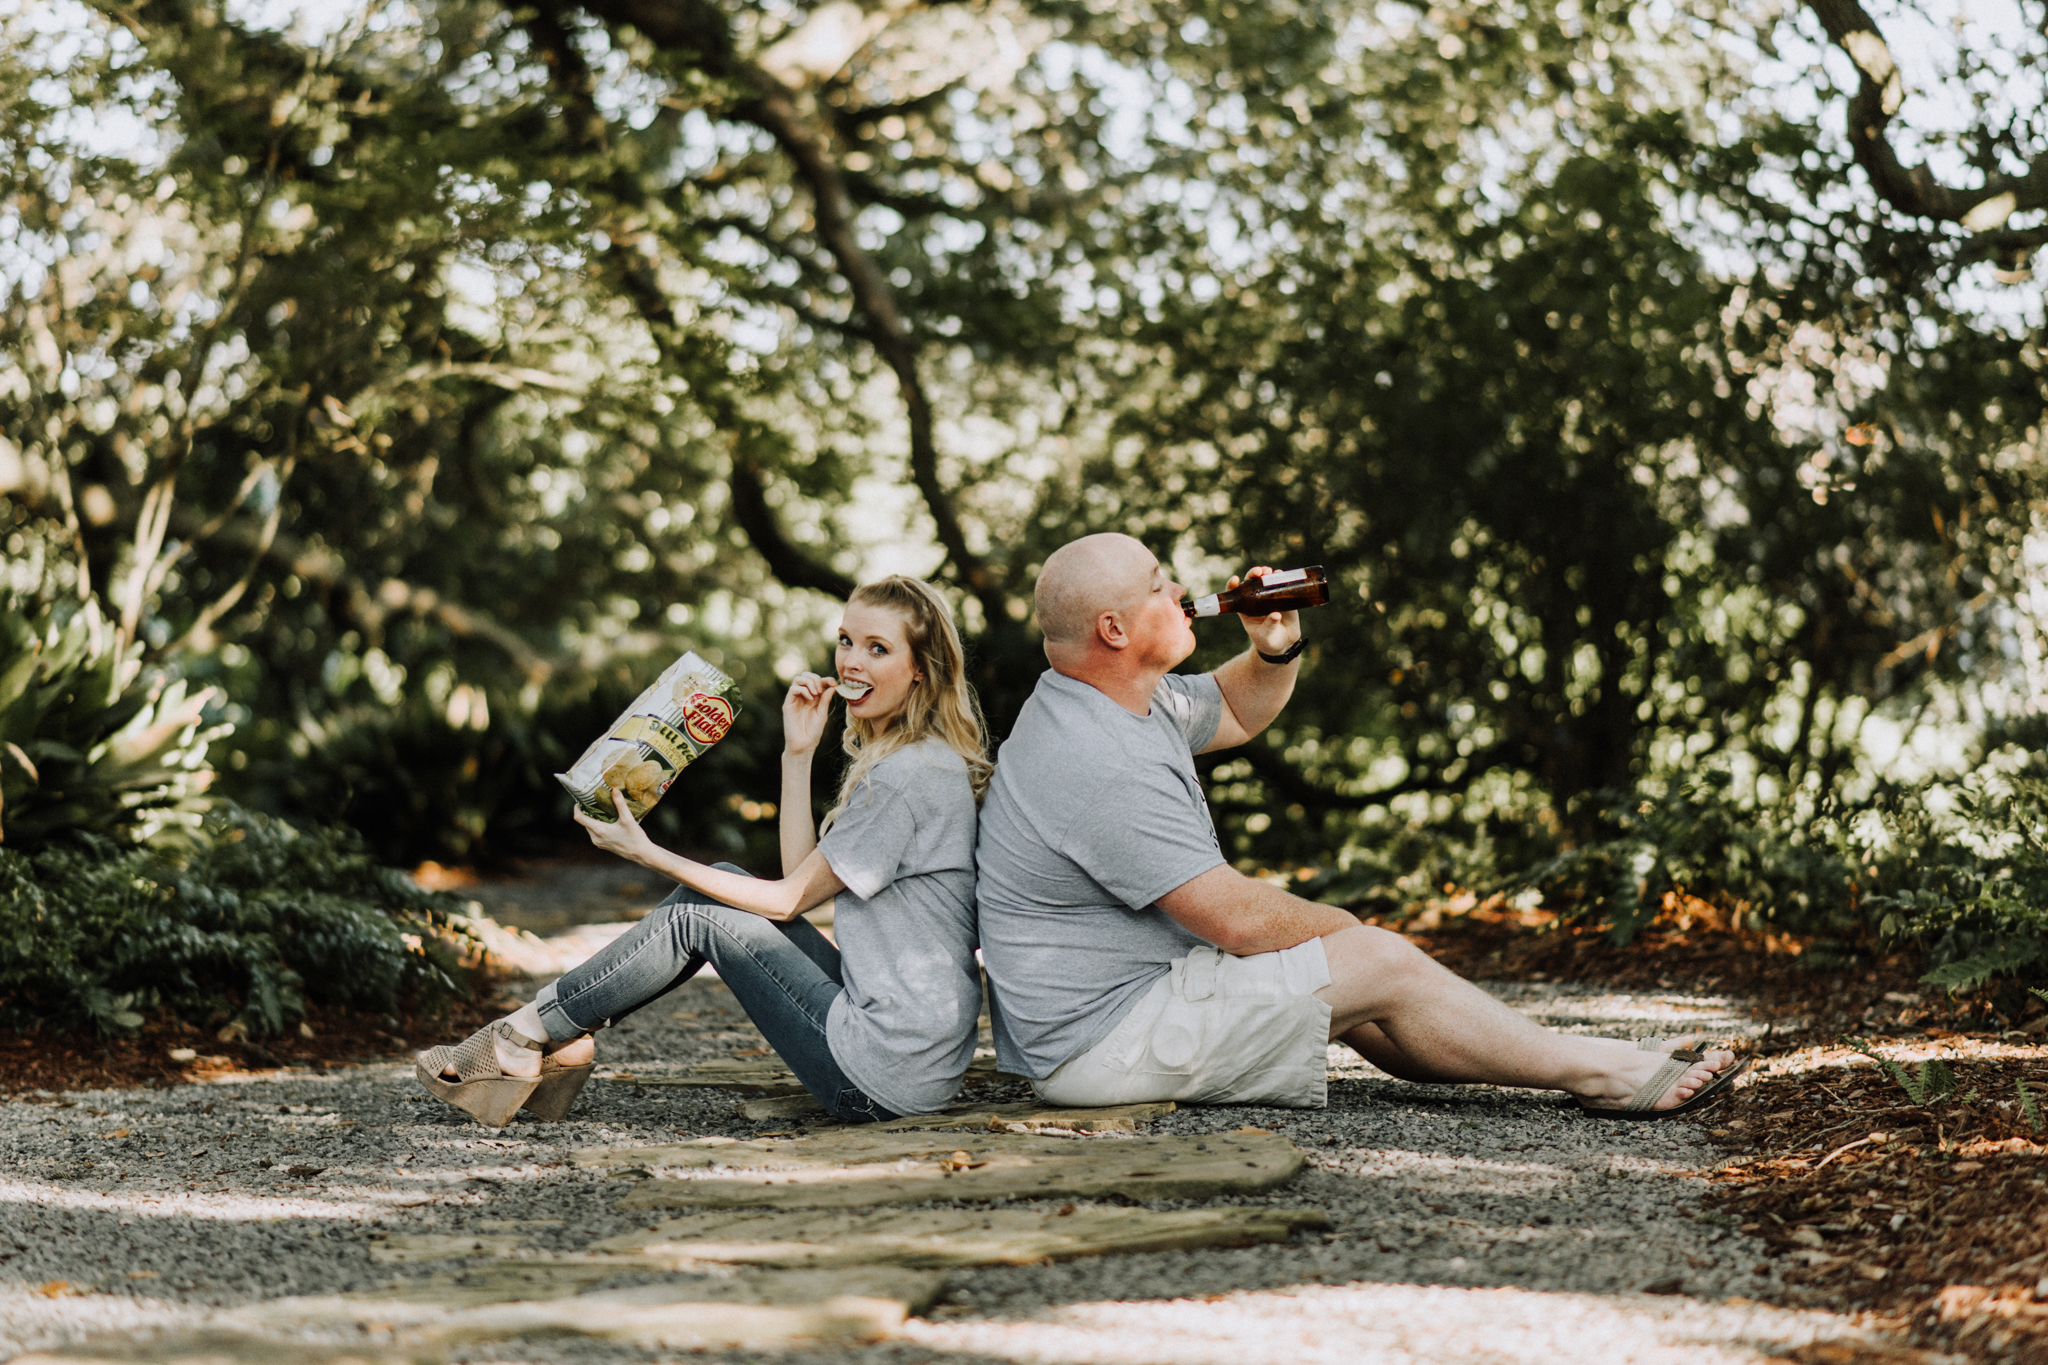 Fourth of July Baby Announcement Mini Session in Baton Rouge, Louisiana by Magnolia and Grace Photography located in Denham Springs.